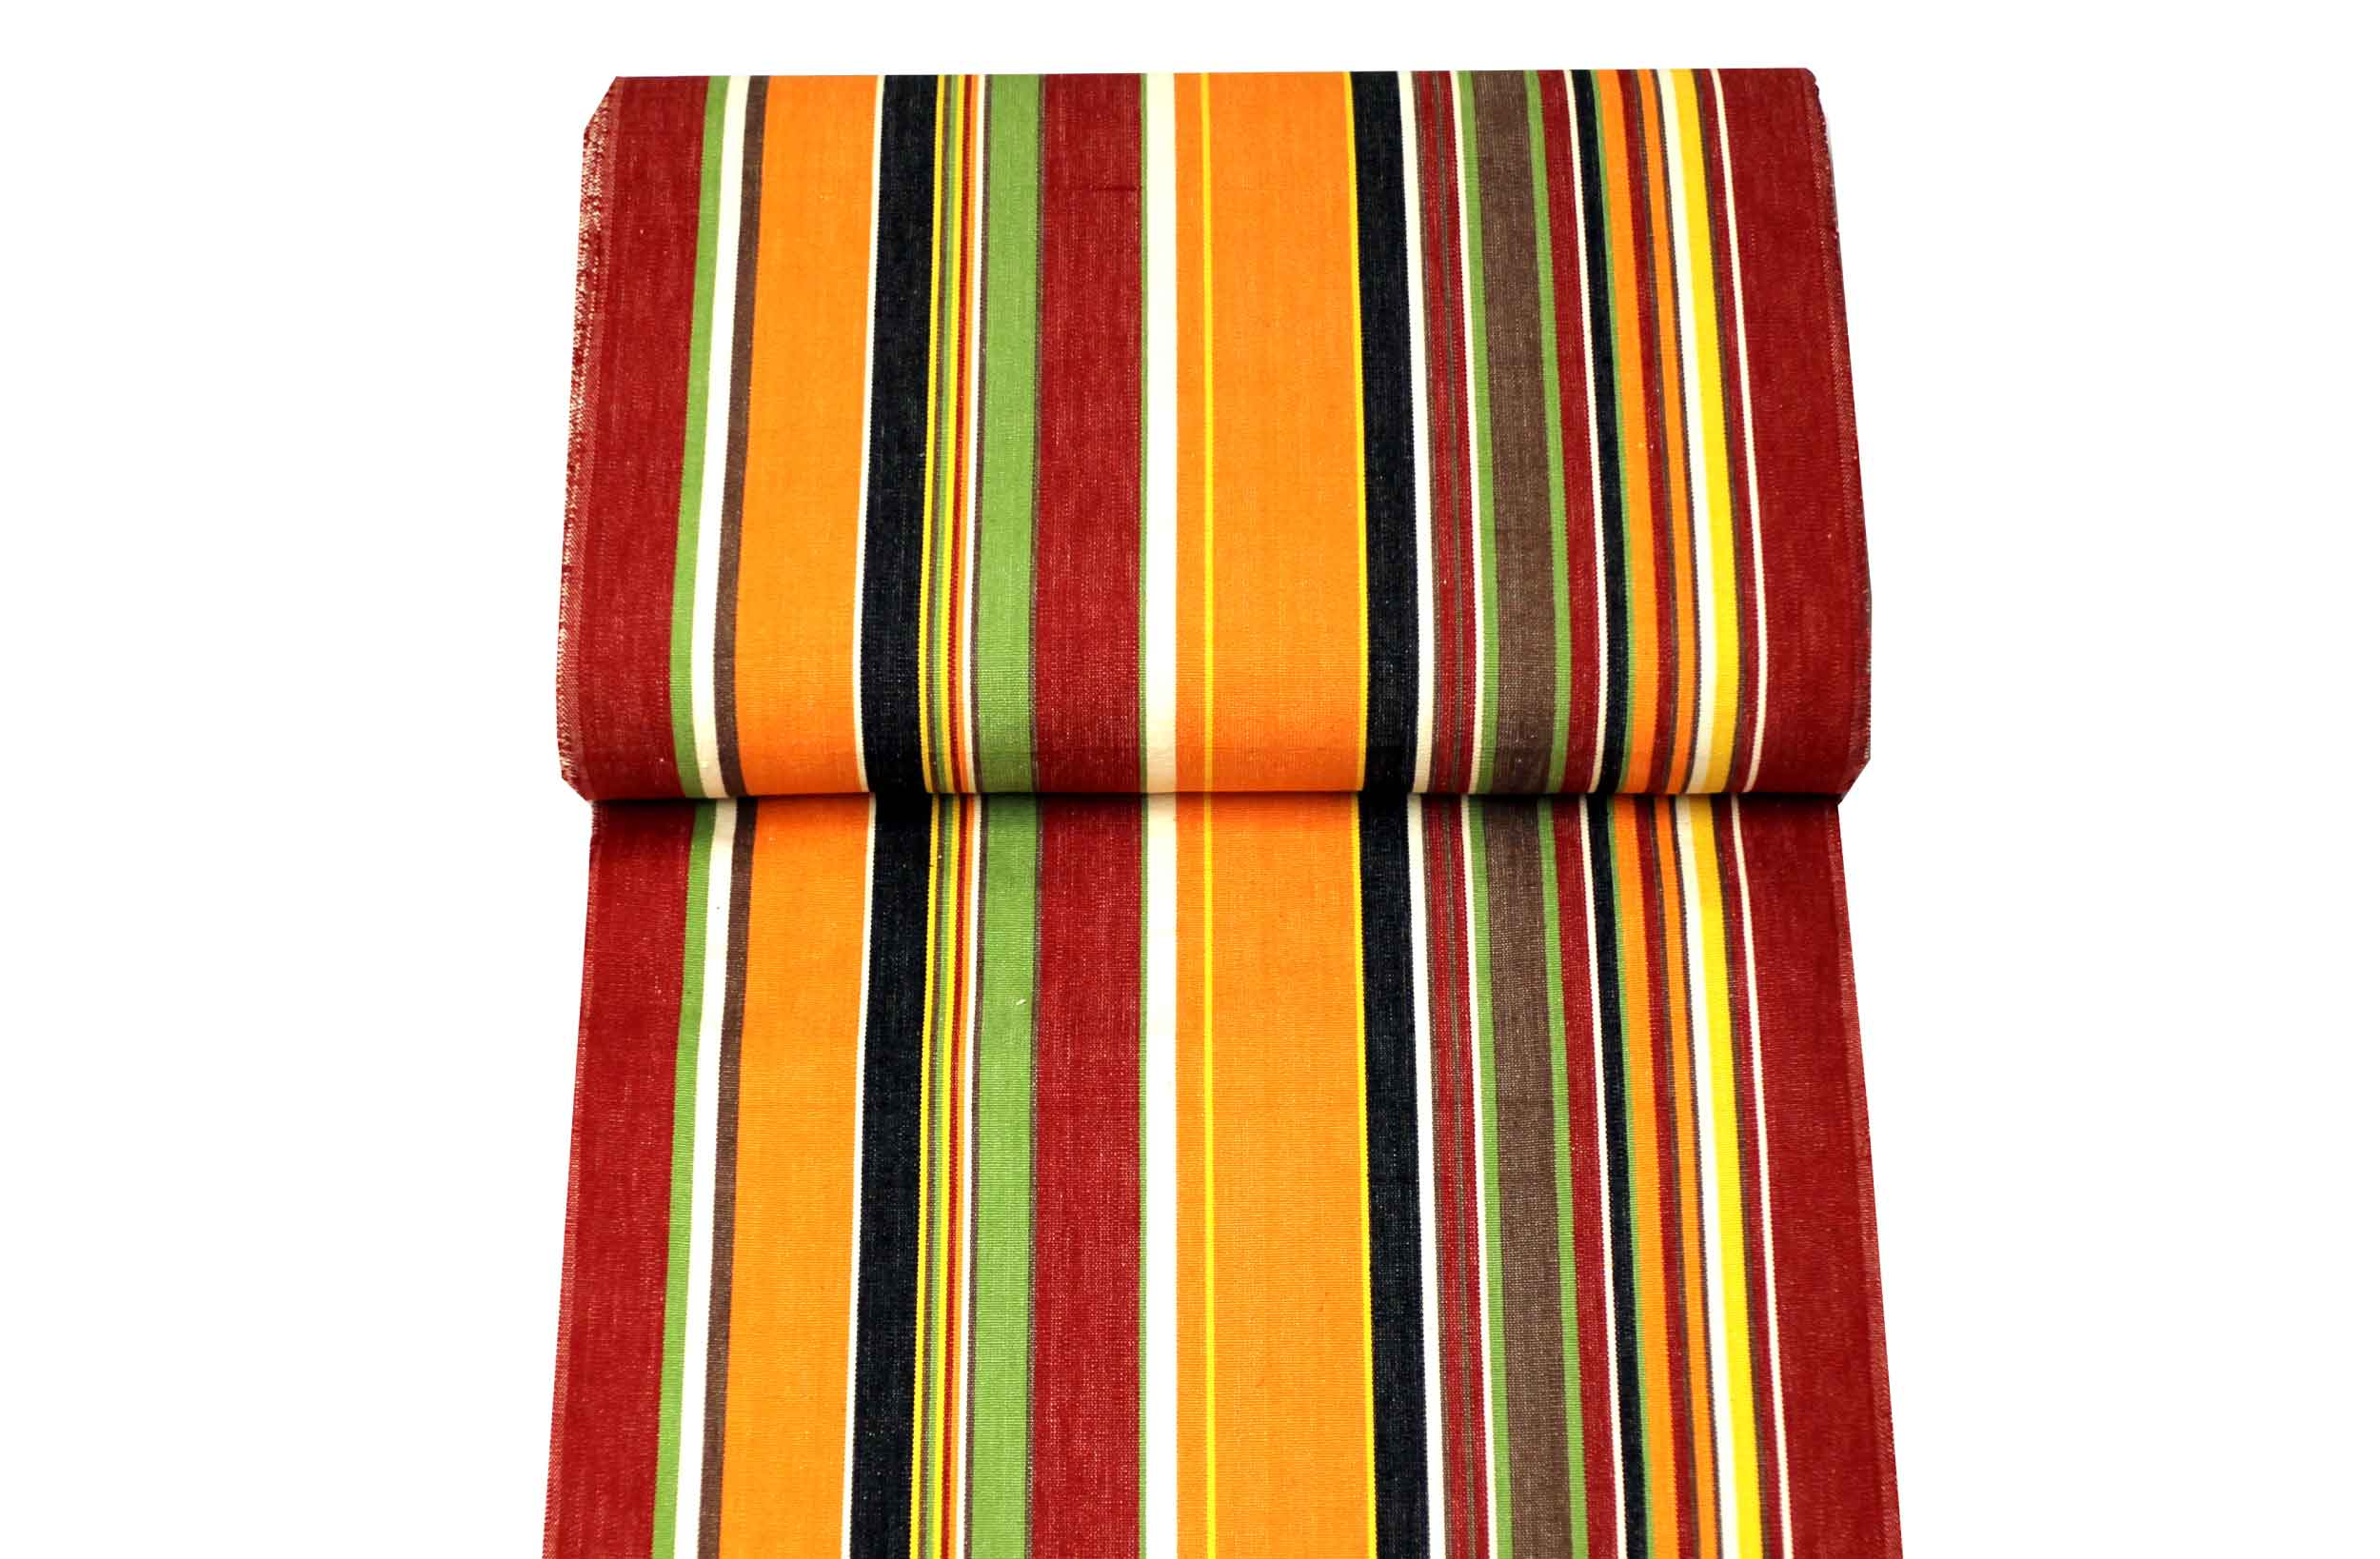 Orange Stripe Deckchair Canvas - Skipping